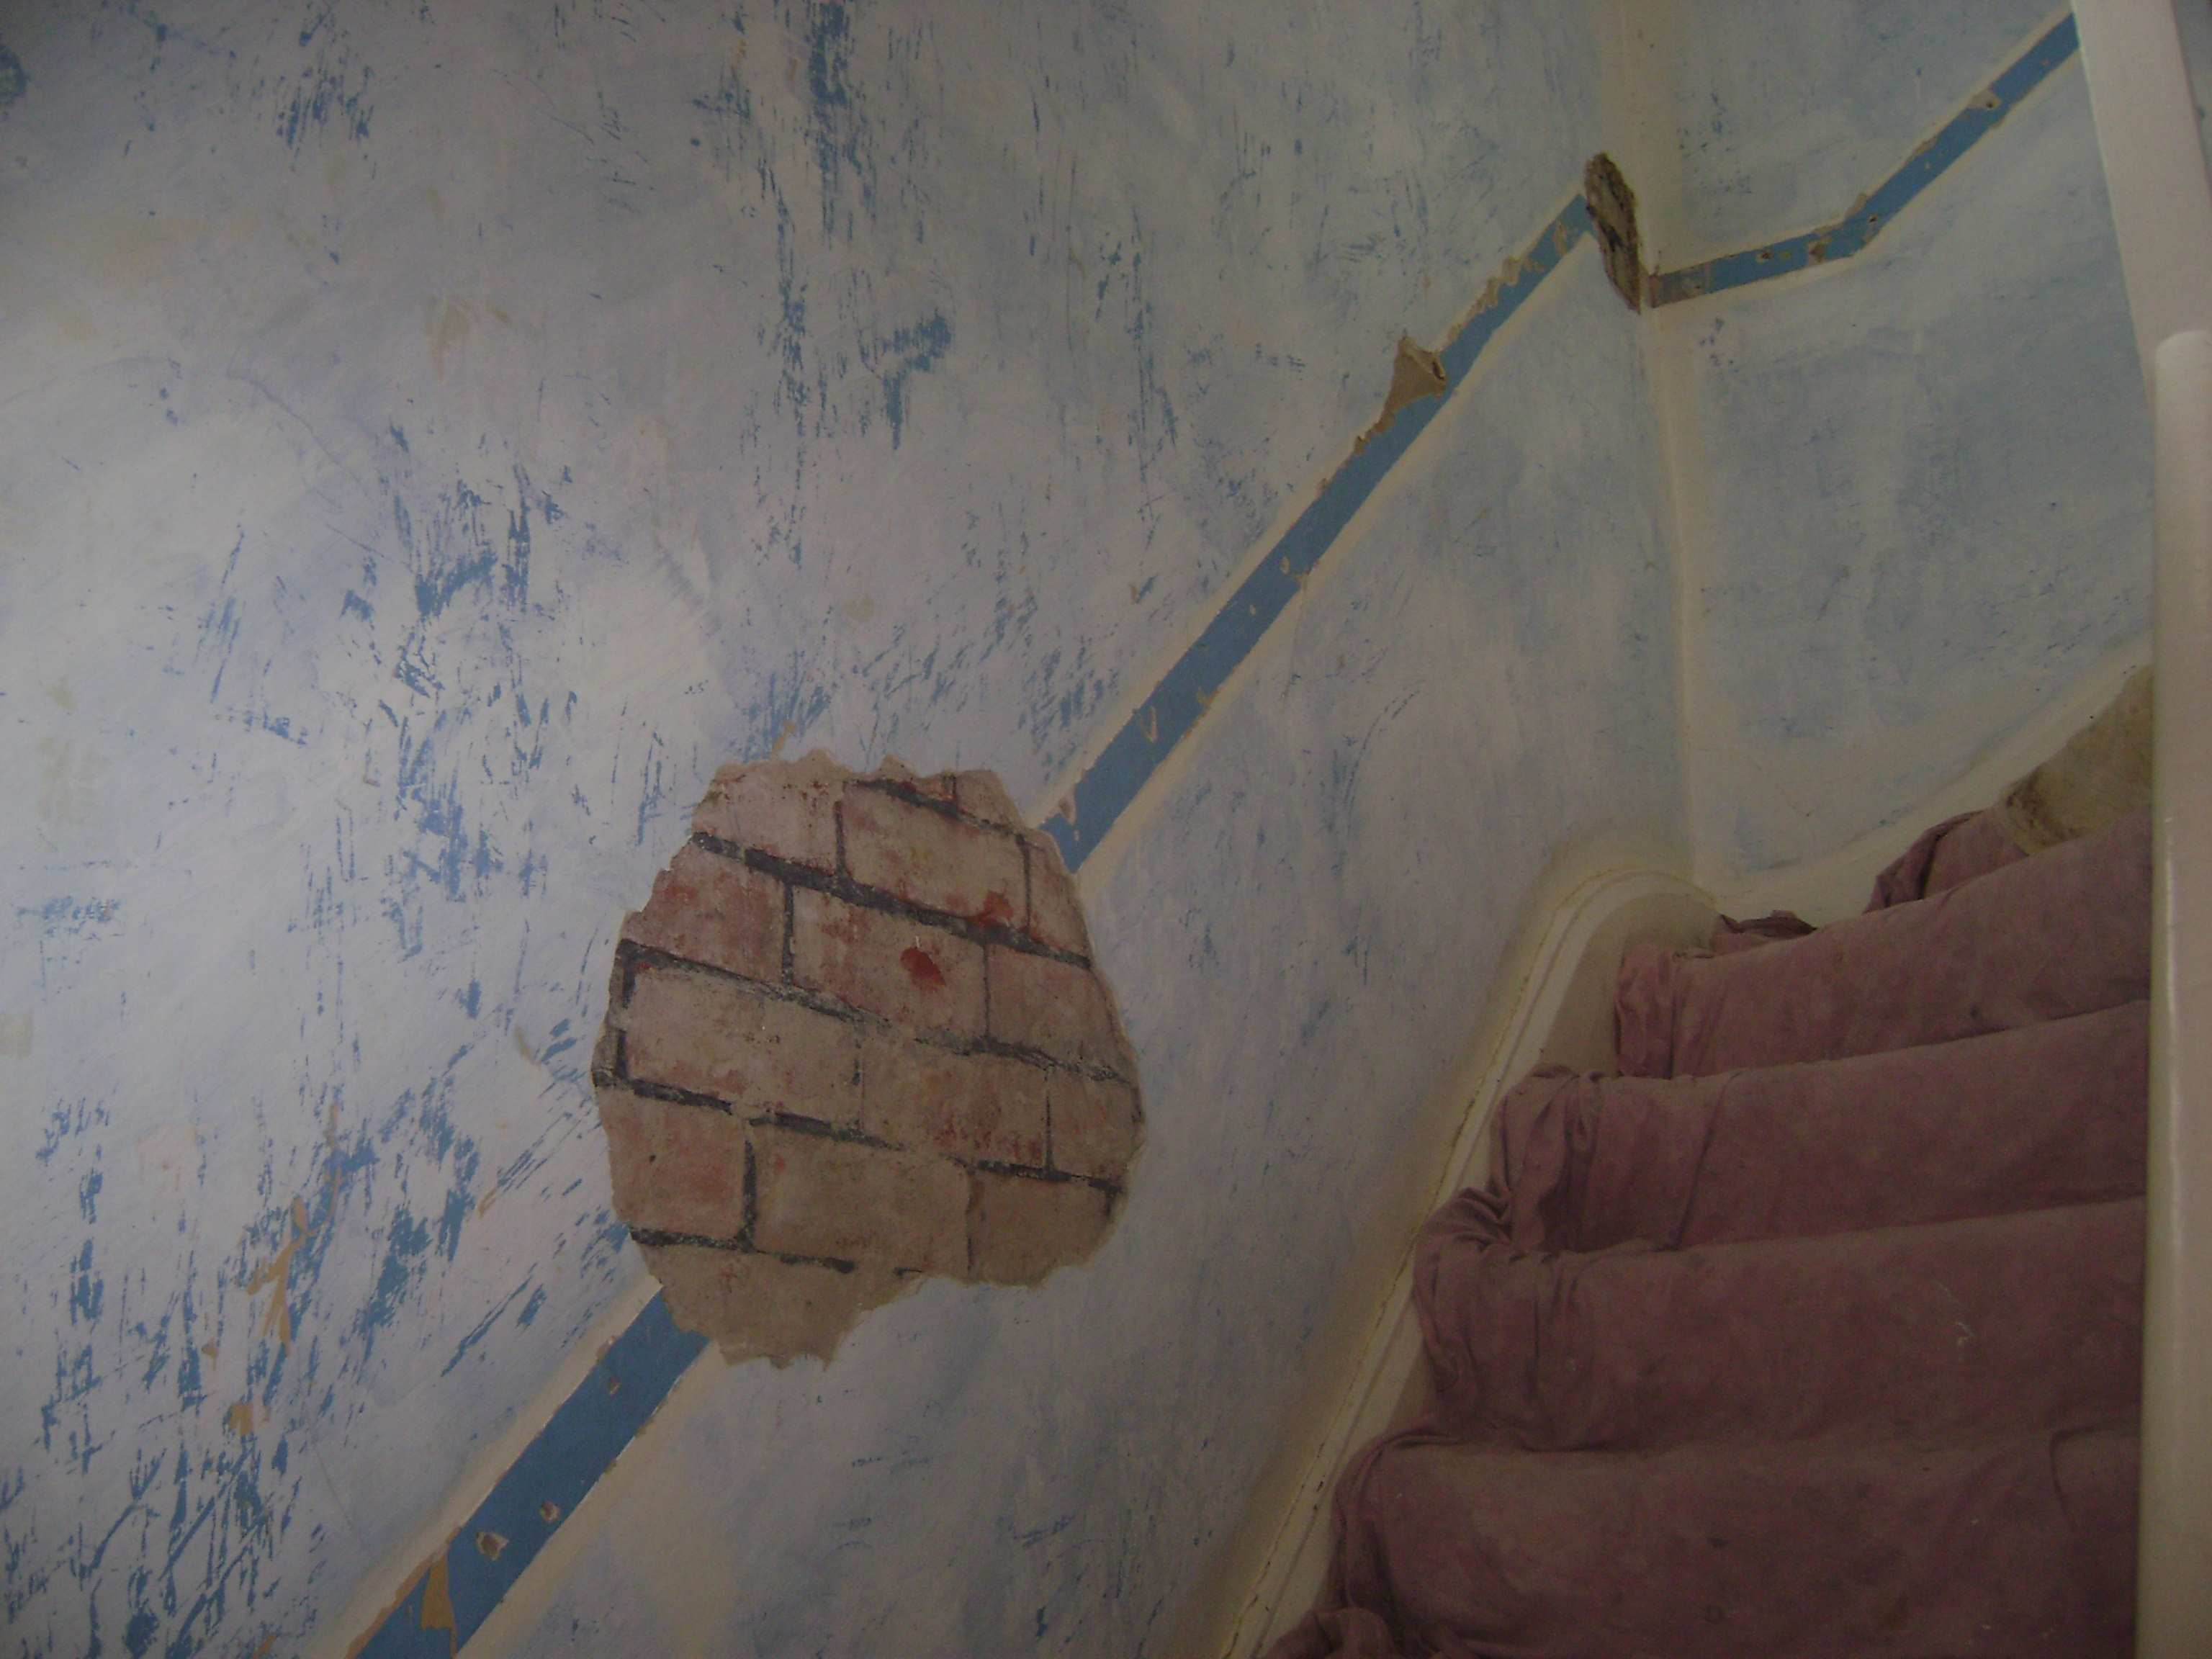 After the customer removed dado rail from this stairwell, a few sections of the wall were blown